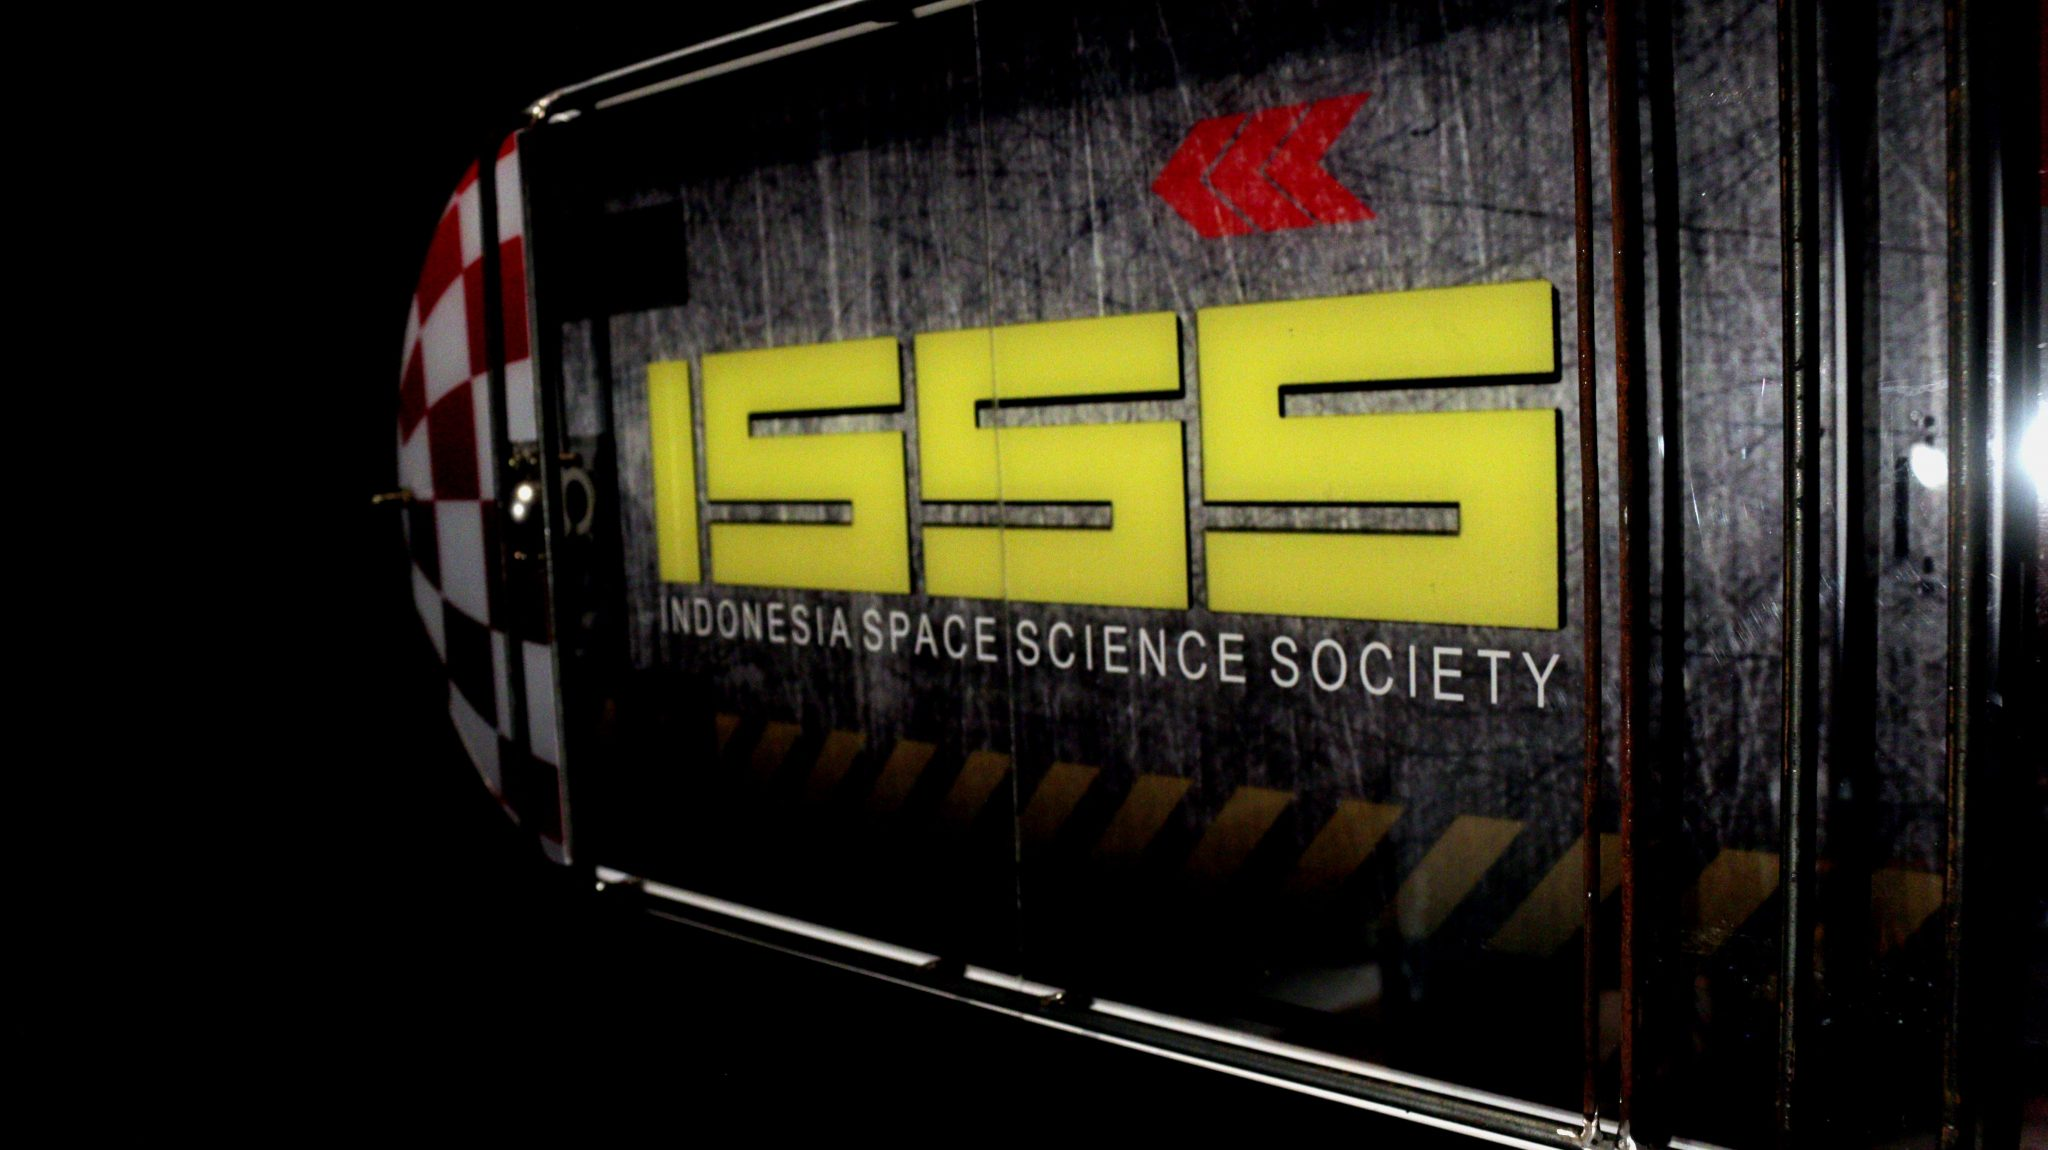 A-Human-Adventure-ISSS-Indonesia-Space-Science-Society-16